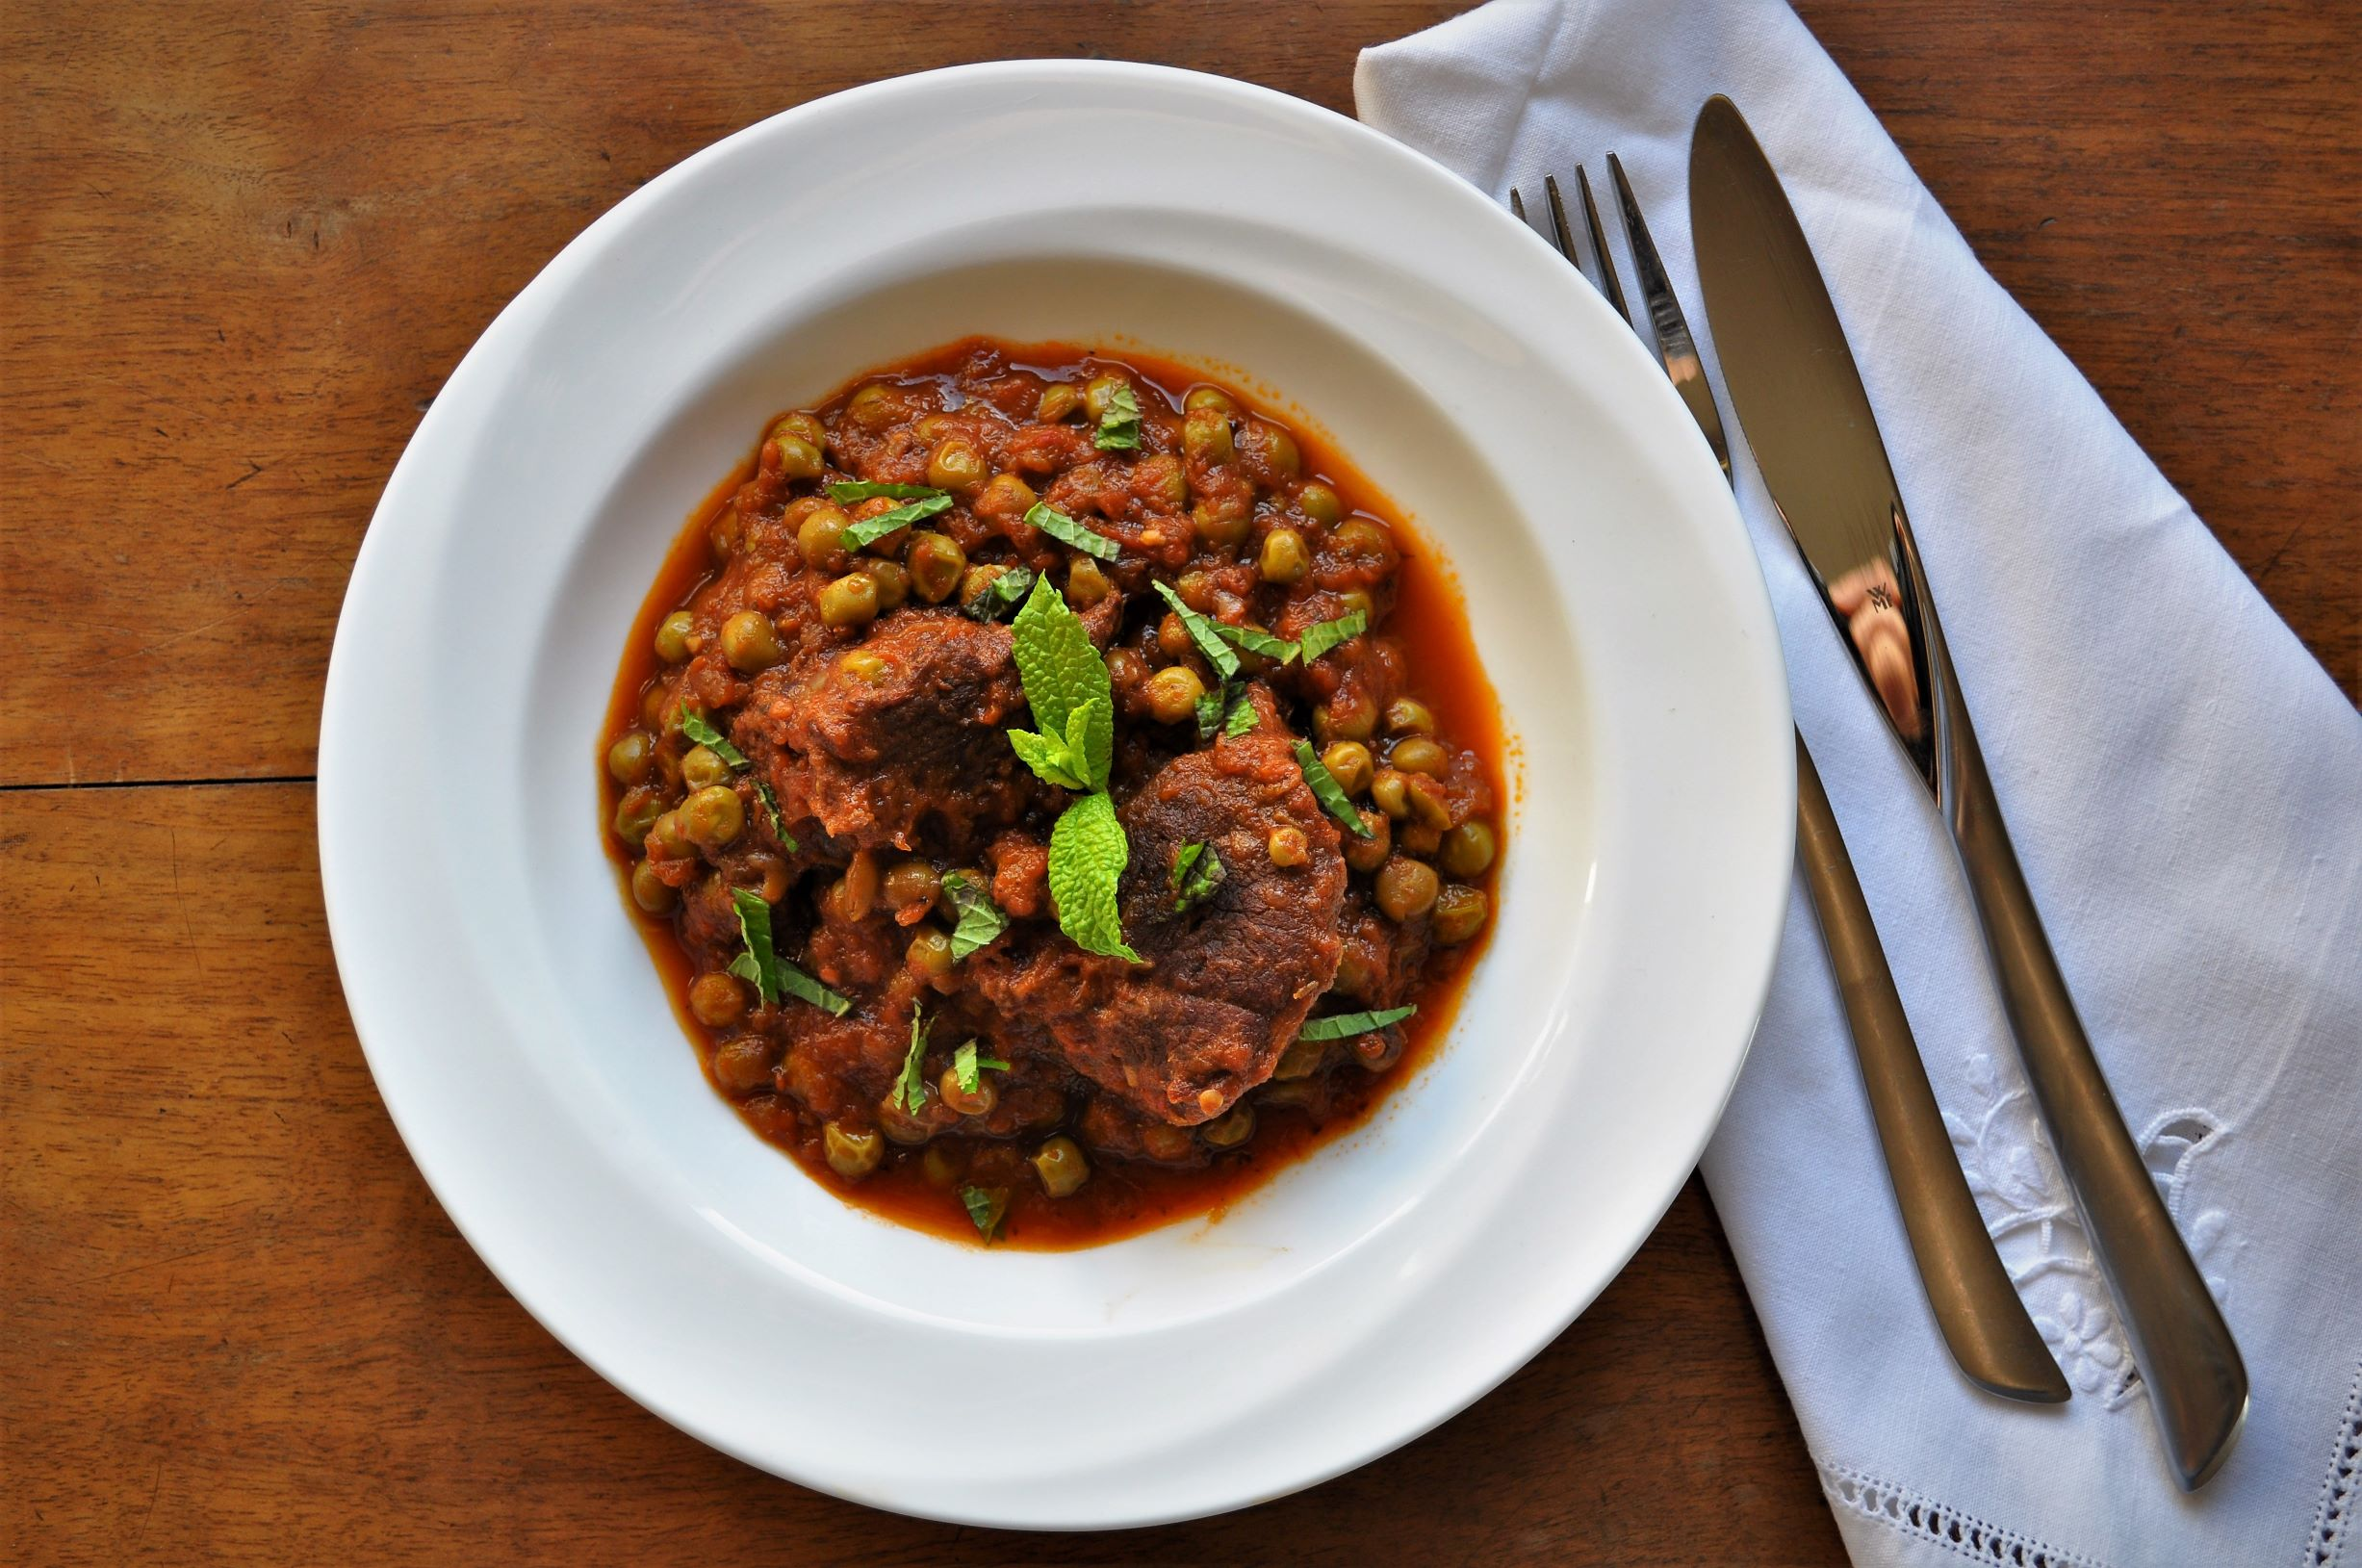 Braised yearling goat with peas